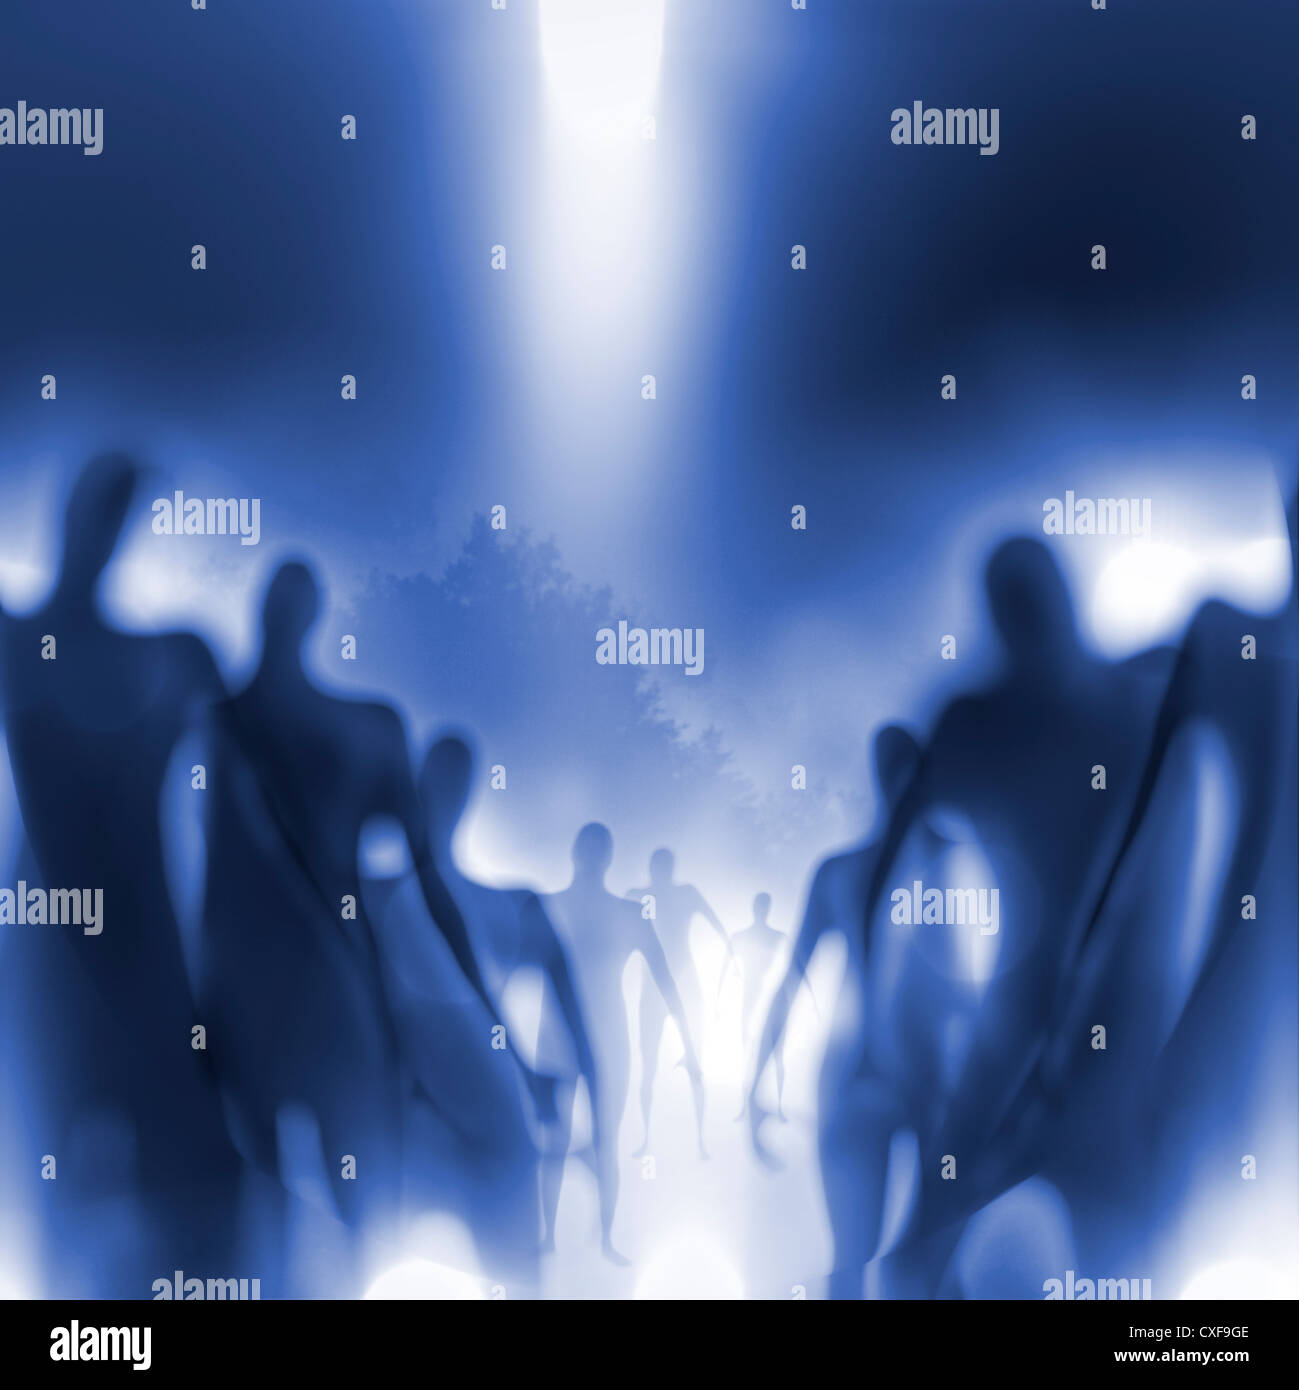 Grainy and blurry image of human-like beings approaching. - Stock Image